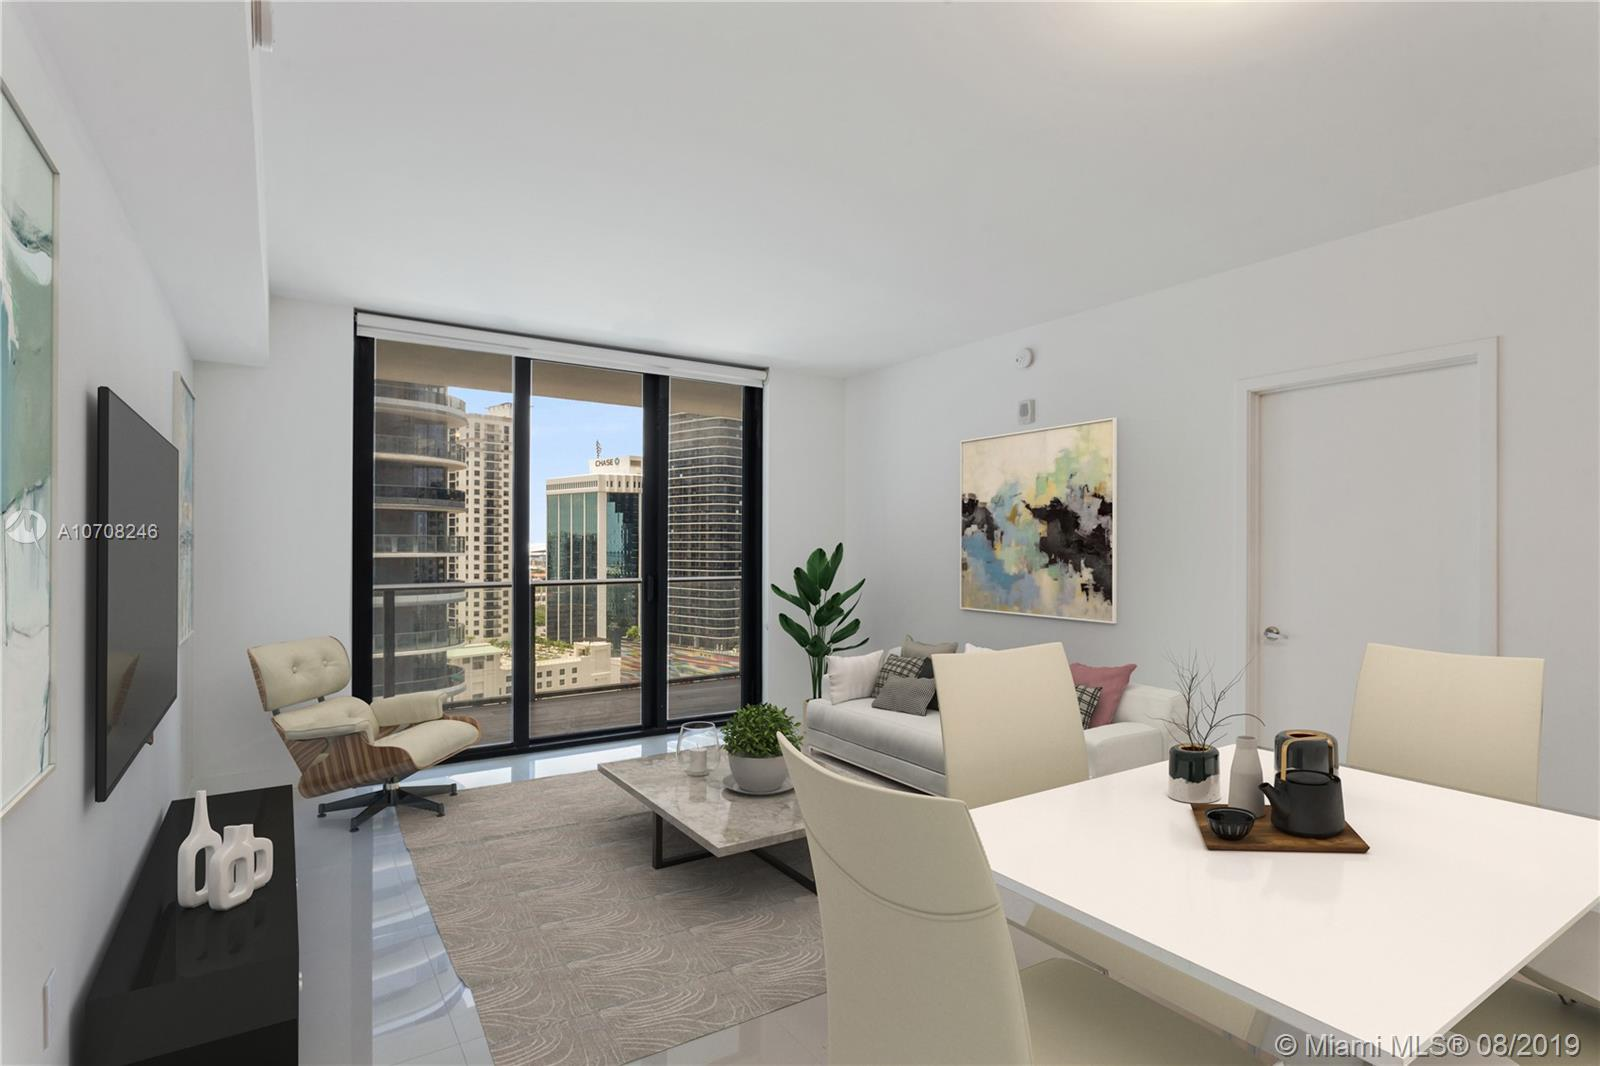 You are in for a pleasant surprise if you are considering making 1010 Brickell your home.  This two bed two bath is fully finished with blinds, tile flooring, closets and finished balcony.  Just wait until you see the finishes such as the European-inspired kitchen and the floor to ceiling windows that offer expansive views of Brickell. There is also enhanced sound proofing between the units to ensure your privacy. There are two floors of amenities offering a spa, fitness center with Peleton bikes, children's playroom, Rooftop lounge for ordering food and drinks, indoor and outdoor pools, jogging trail, basketball, racquetball, virtual golf, business center and concierge services.  There are many more amenities, please check in photos for a detailed list.  Visit today!